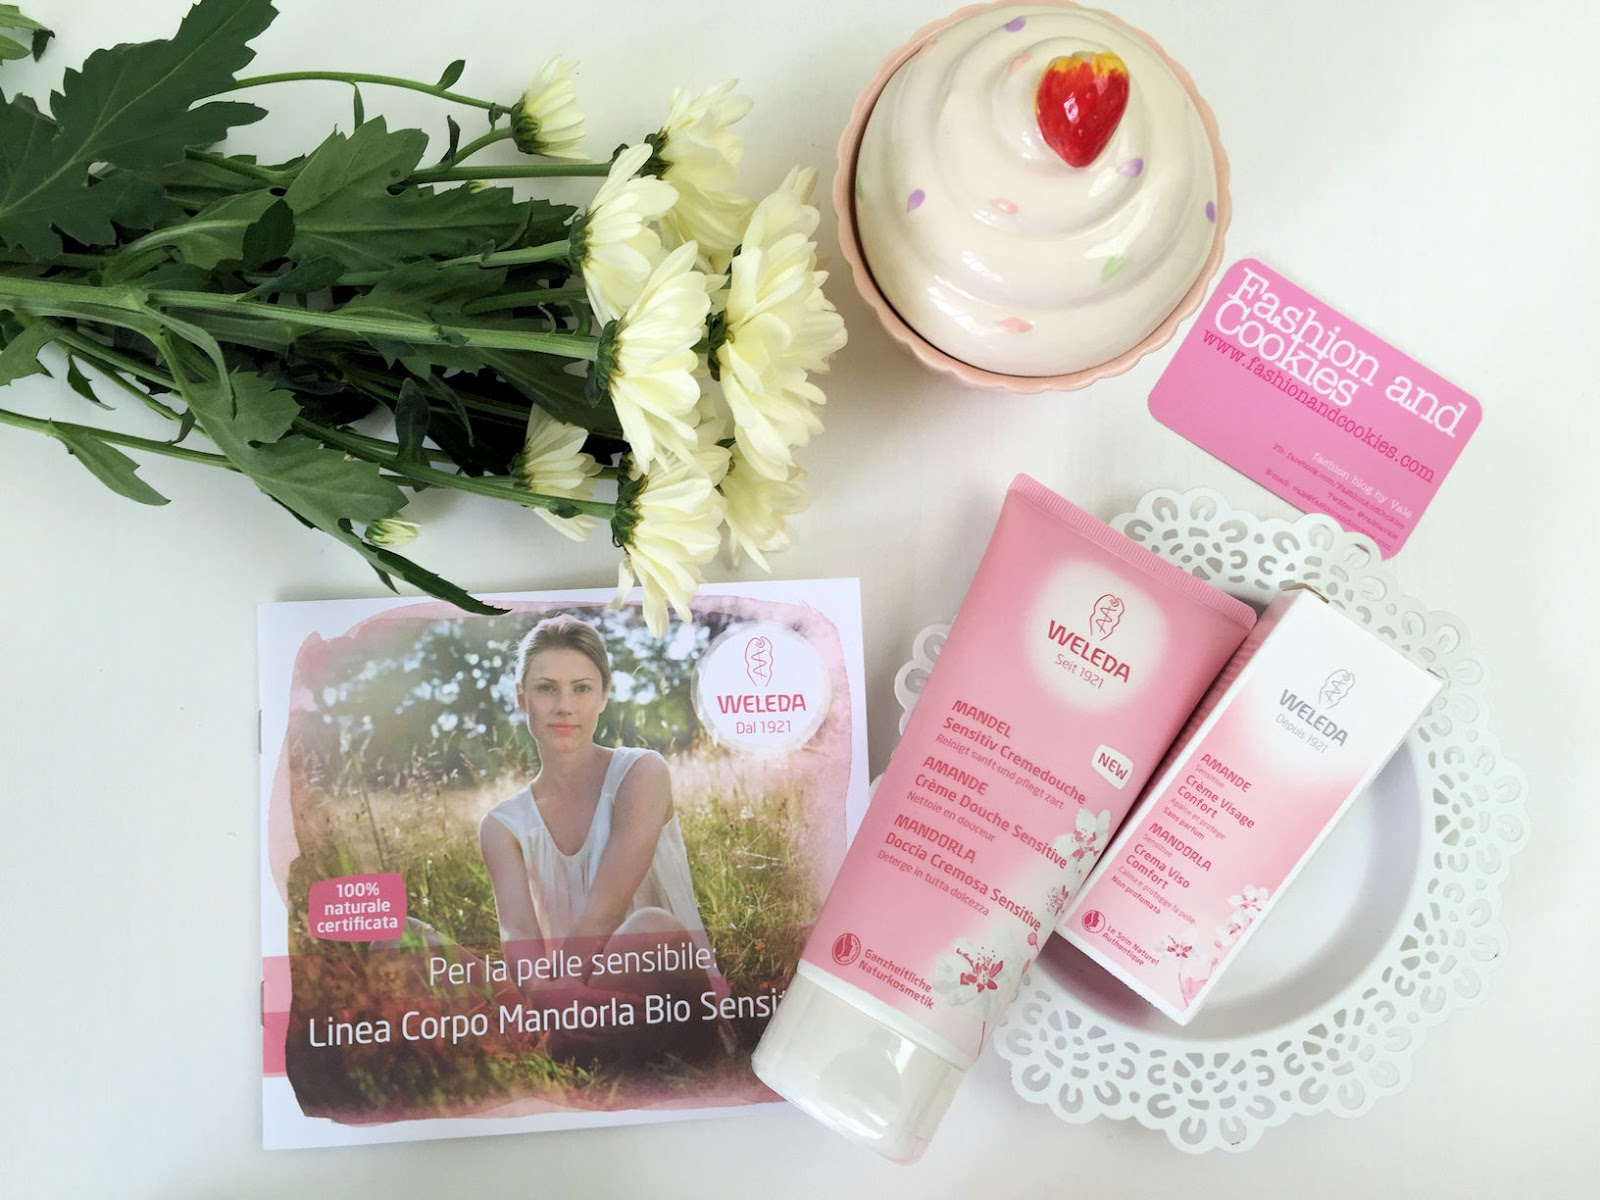 Weleda Creme Douche Sensitive and day cream with Almond Oil on Fashion and Cookies beauty blog, beauty blogger